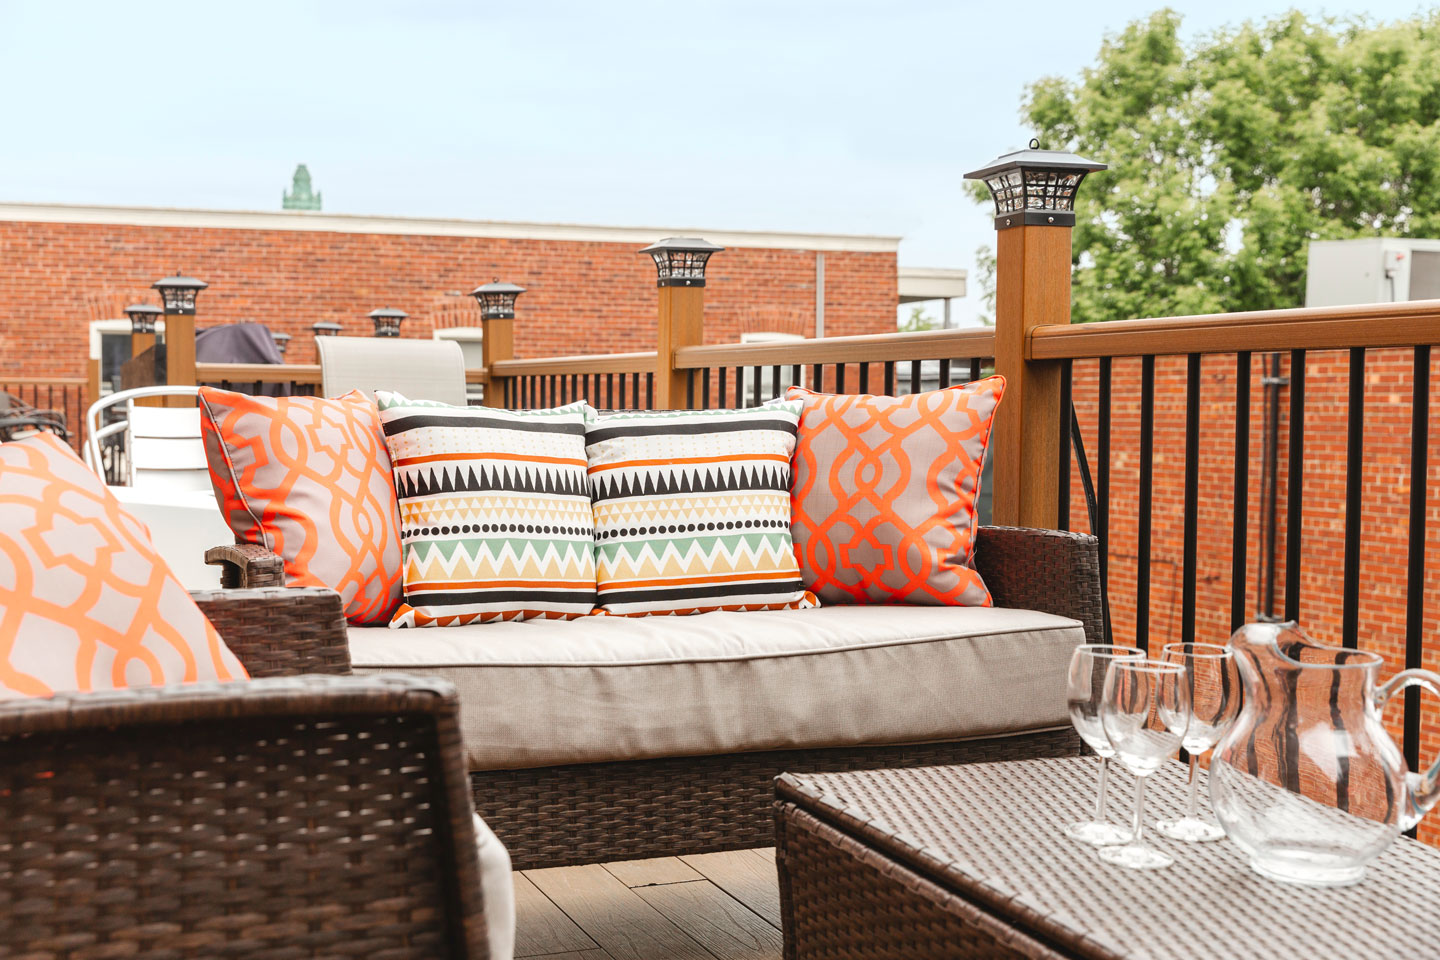 Golden kiss: sunny patio, outdoor lounge furniture and BBQ